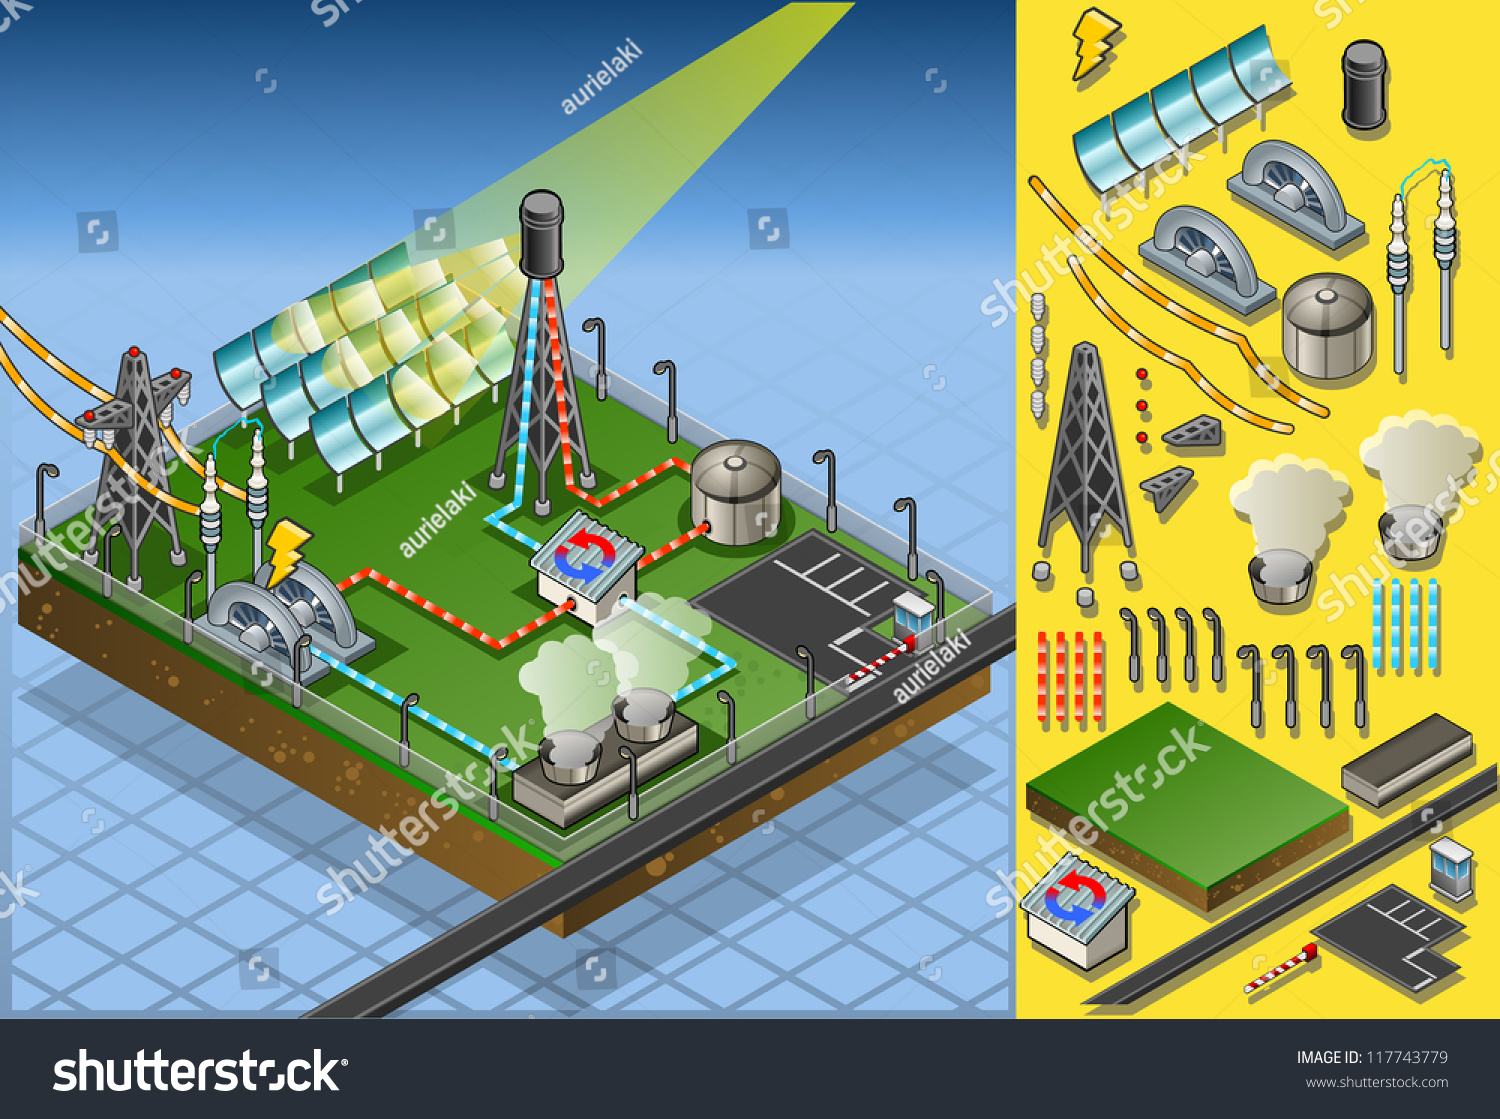 Isometric Building Concentrating Solar Power Systems Stock Vector Homemade Panels Wiring Diagram Csp Plant Farms Electric Station Electricity Grid And